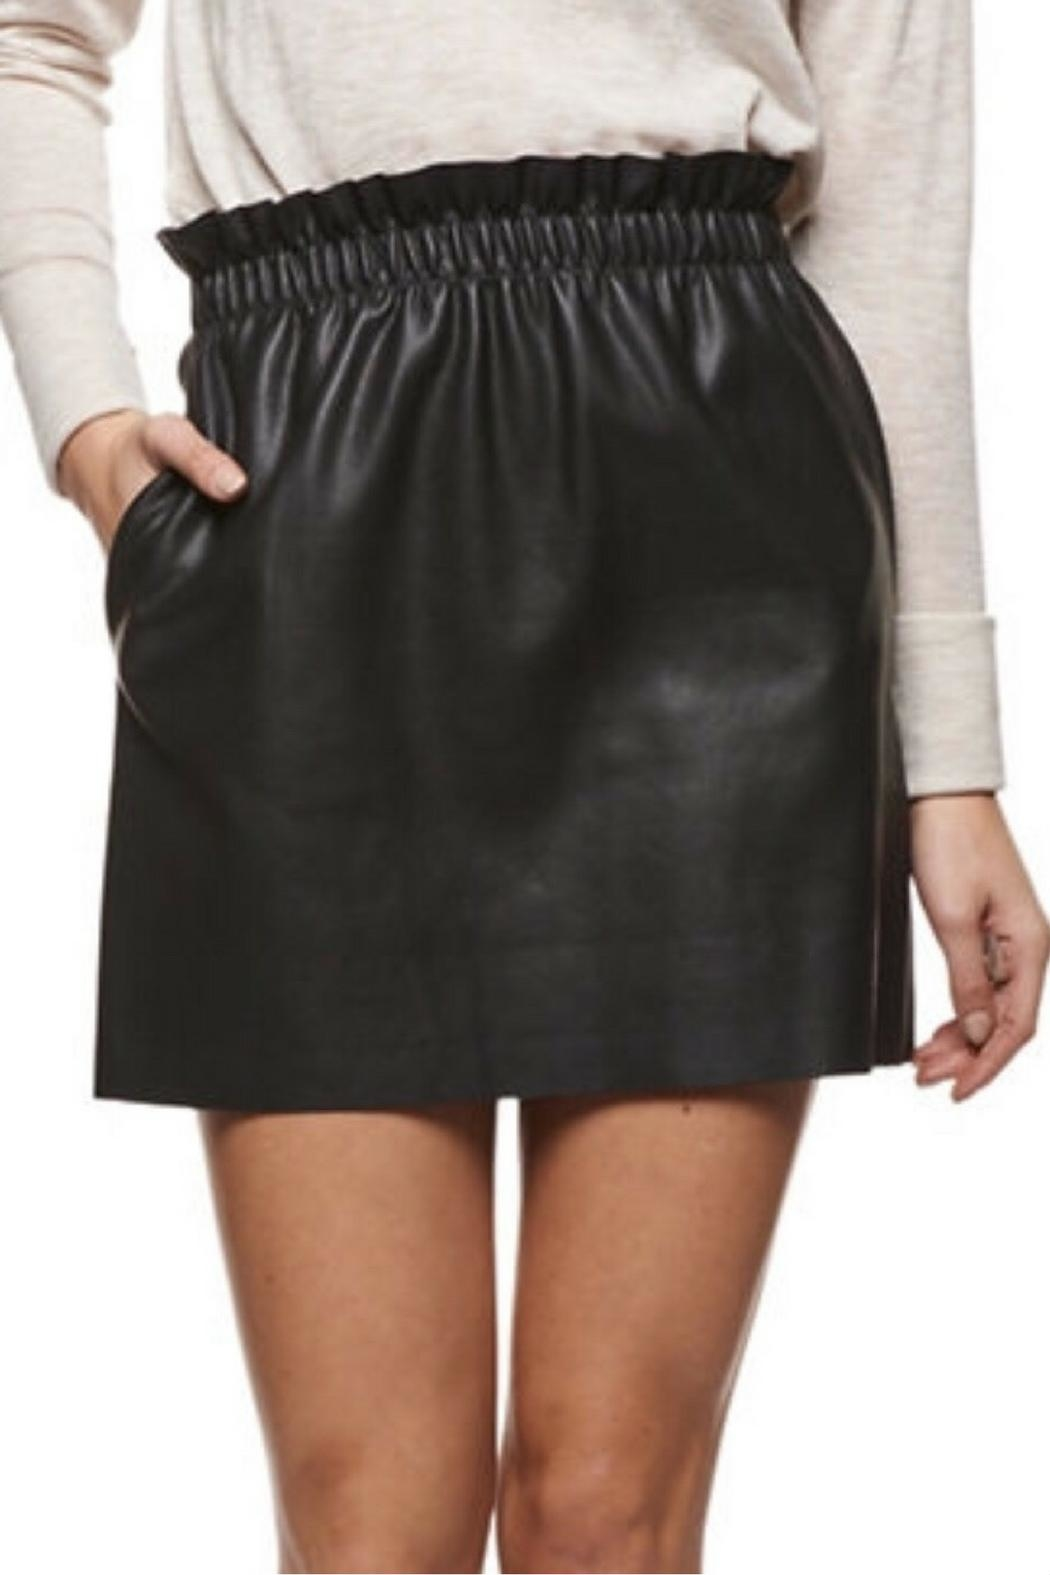 best service 100% authentic for sale Dex Pull-On Faux-Leather Skirt from Fayetteville by Gatsby's ...